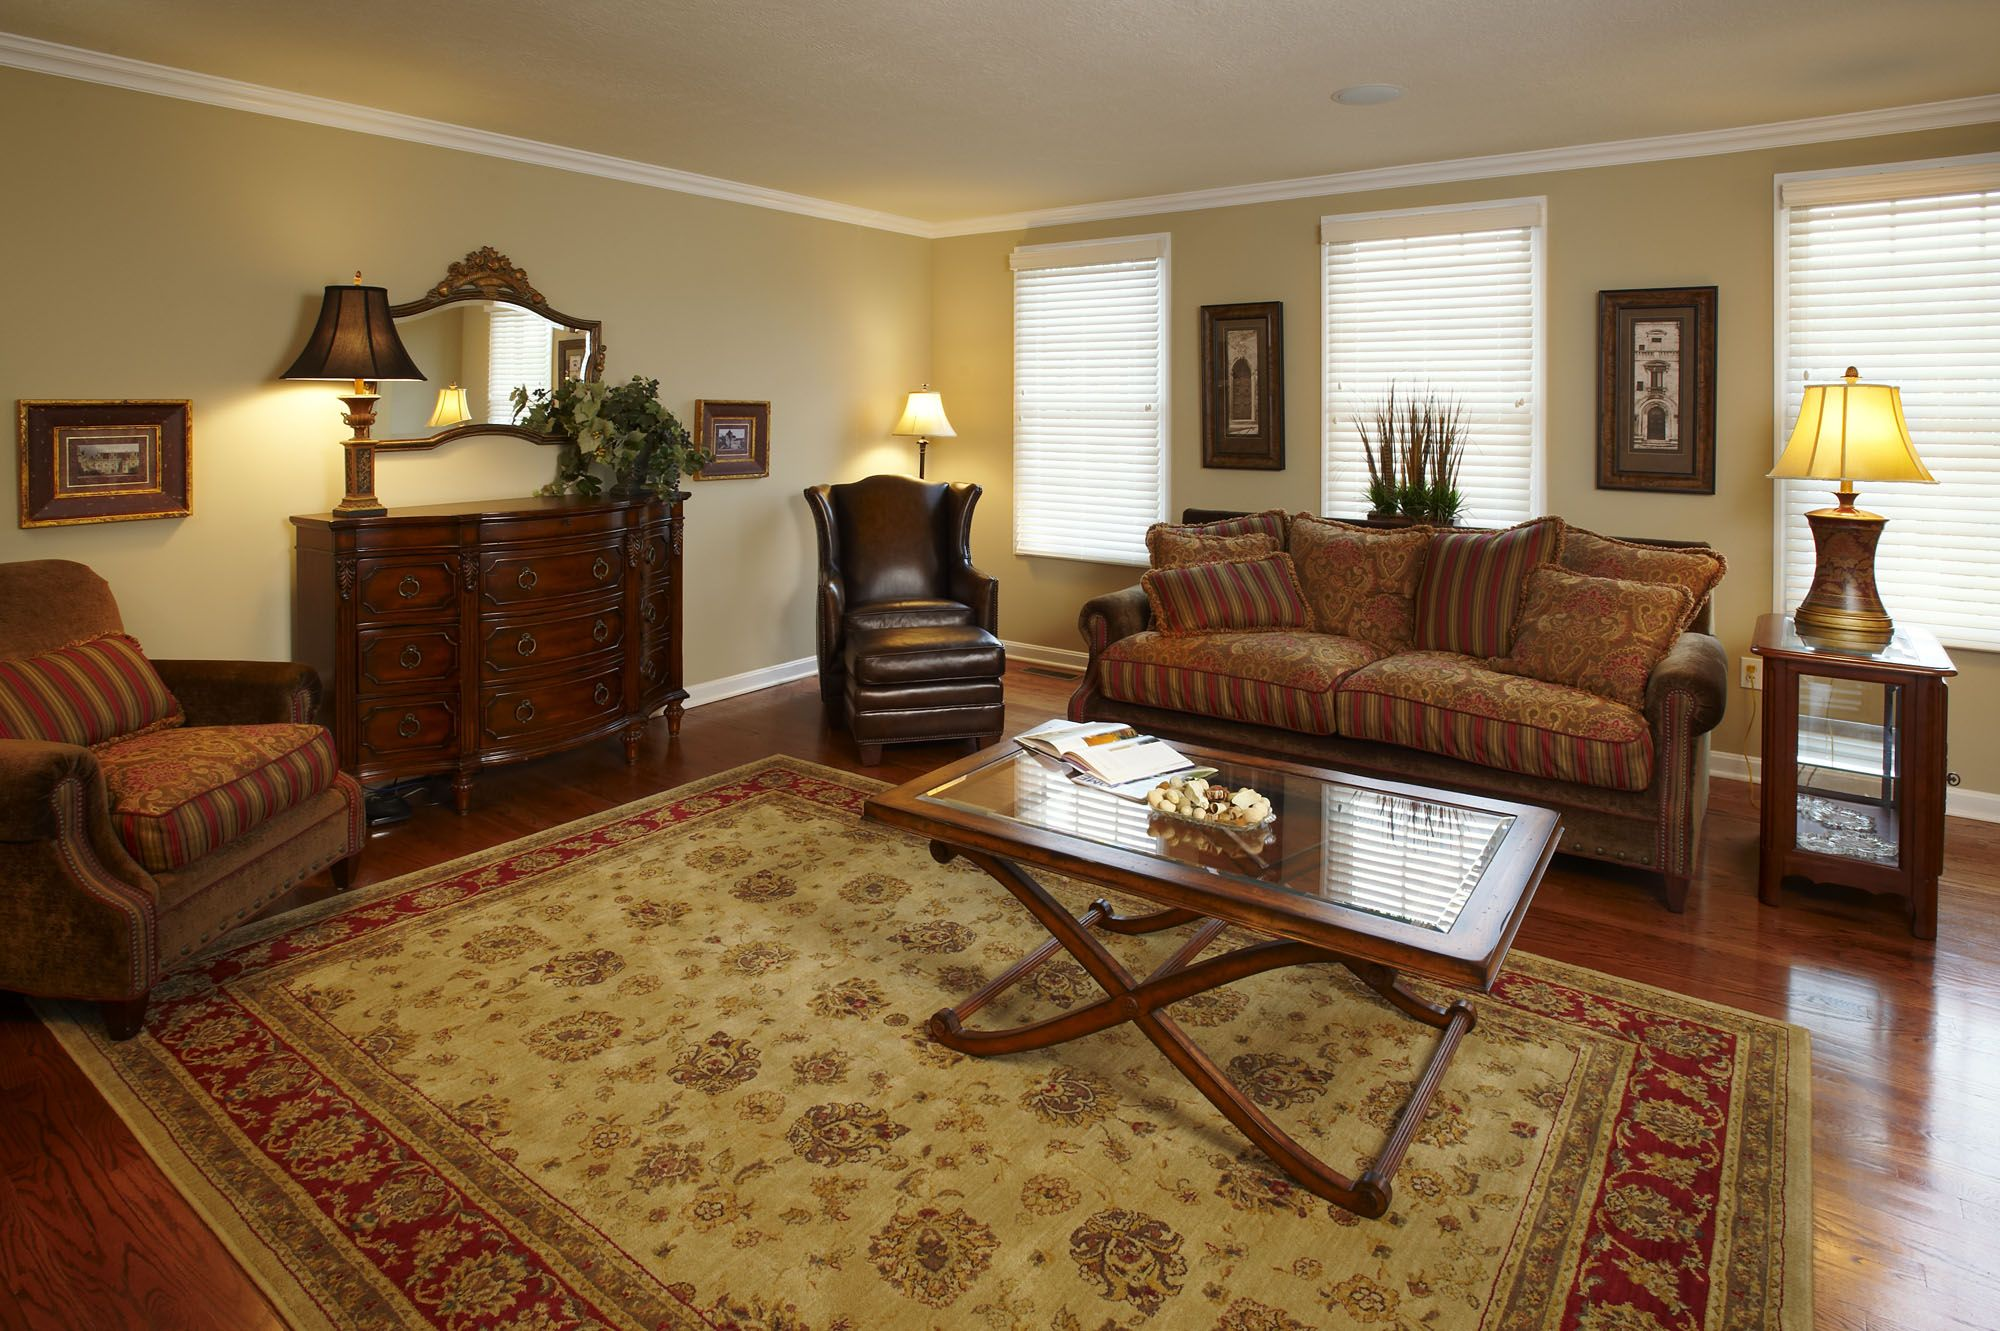 Model home furniture sale pittsburgh